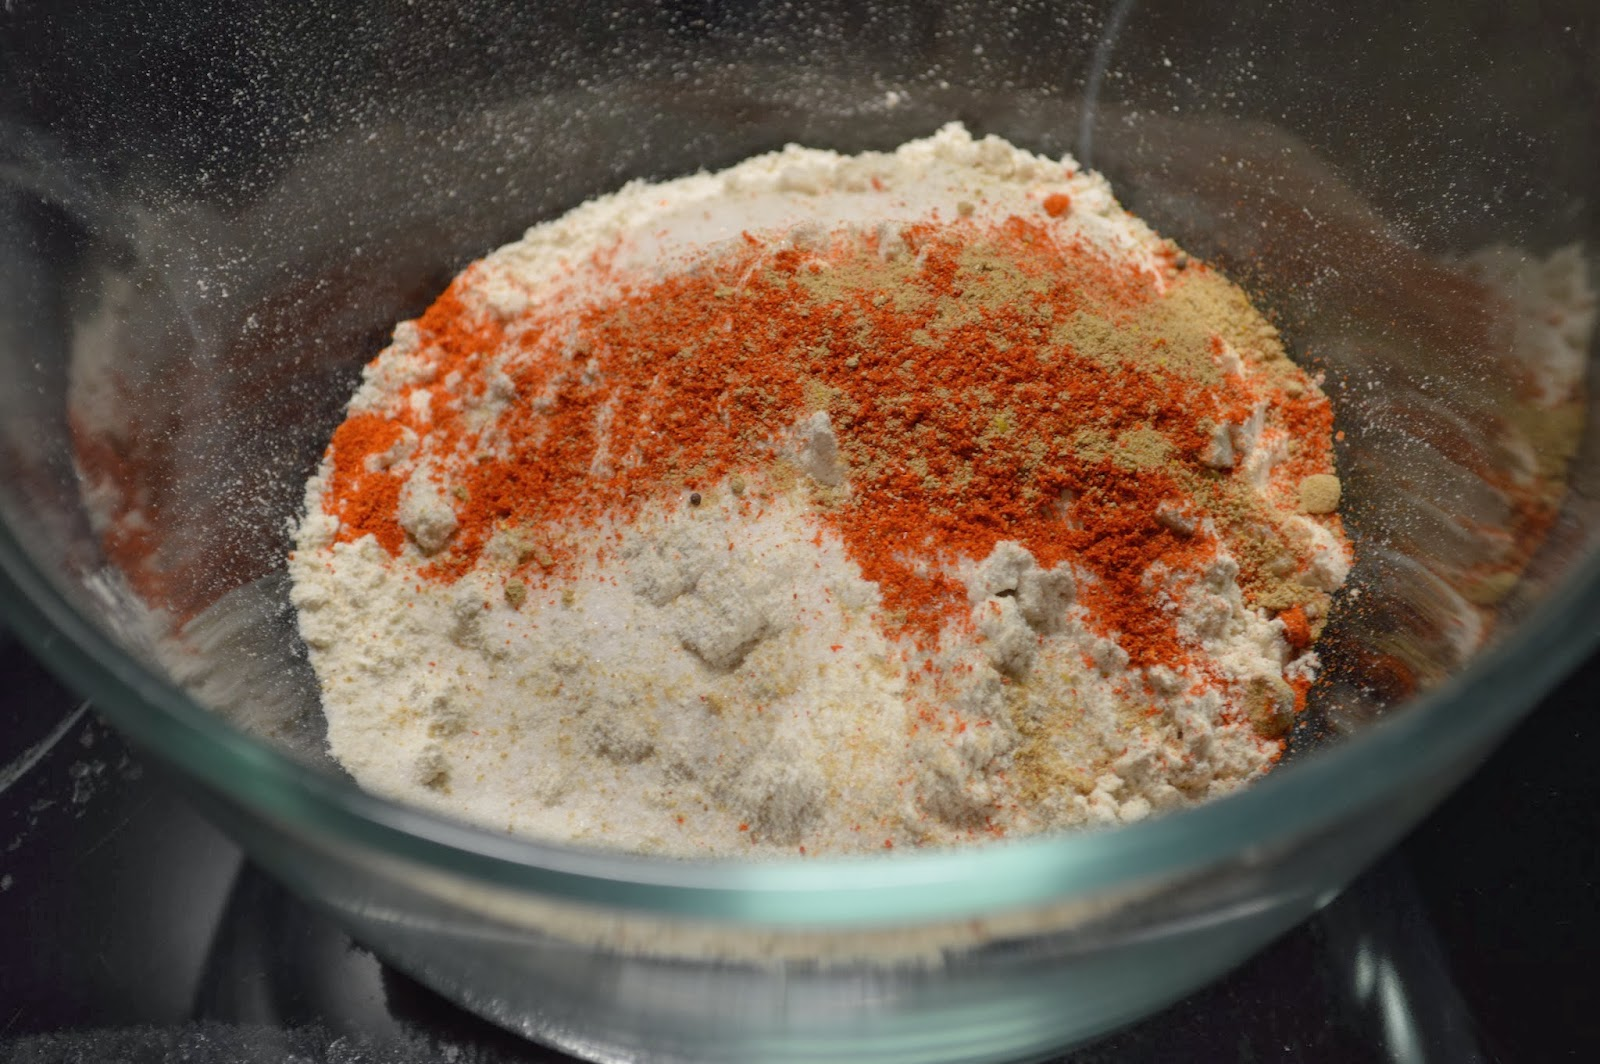 Wheat Flour, salt and spices